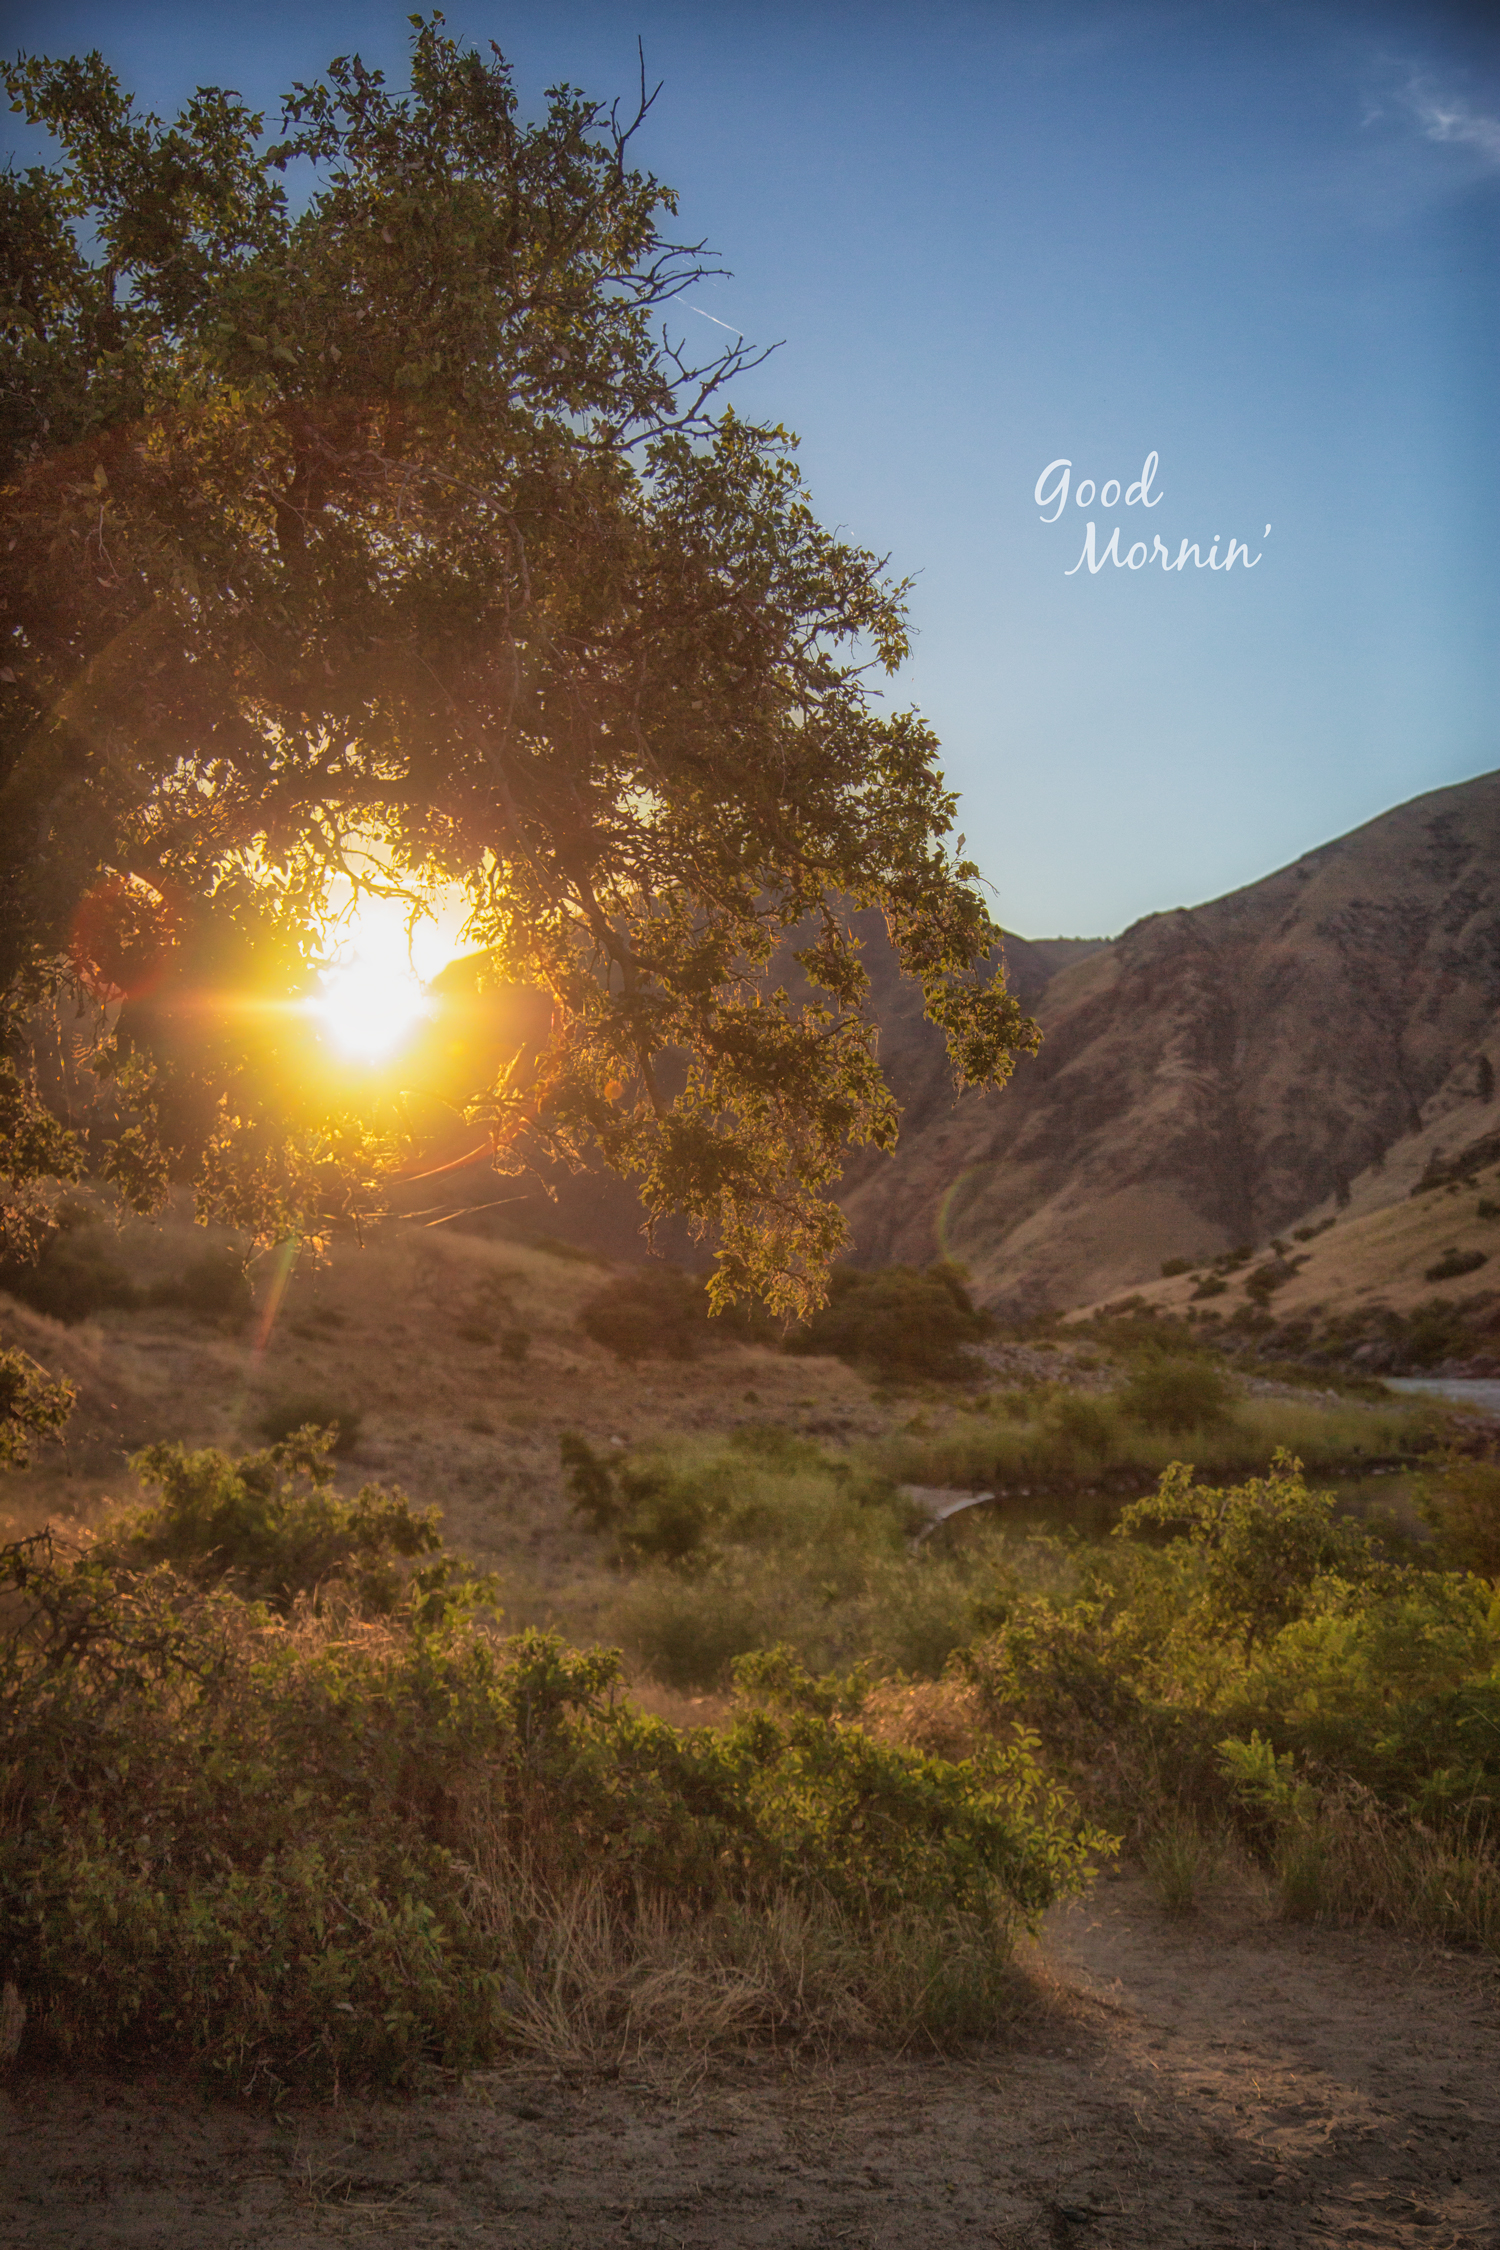 Morning Sun in Hells Canyon via J5MM.com